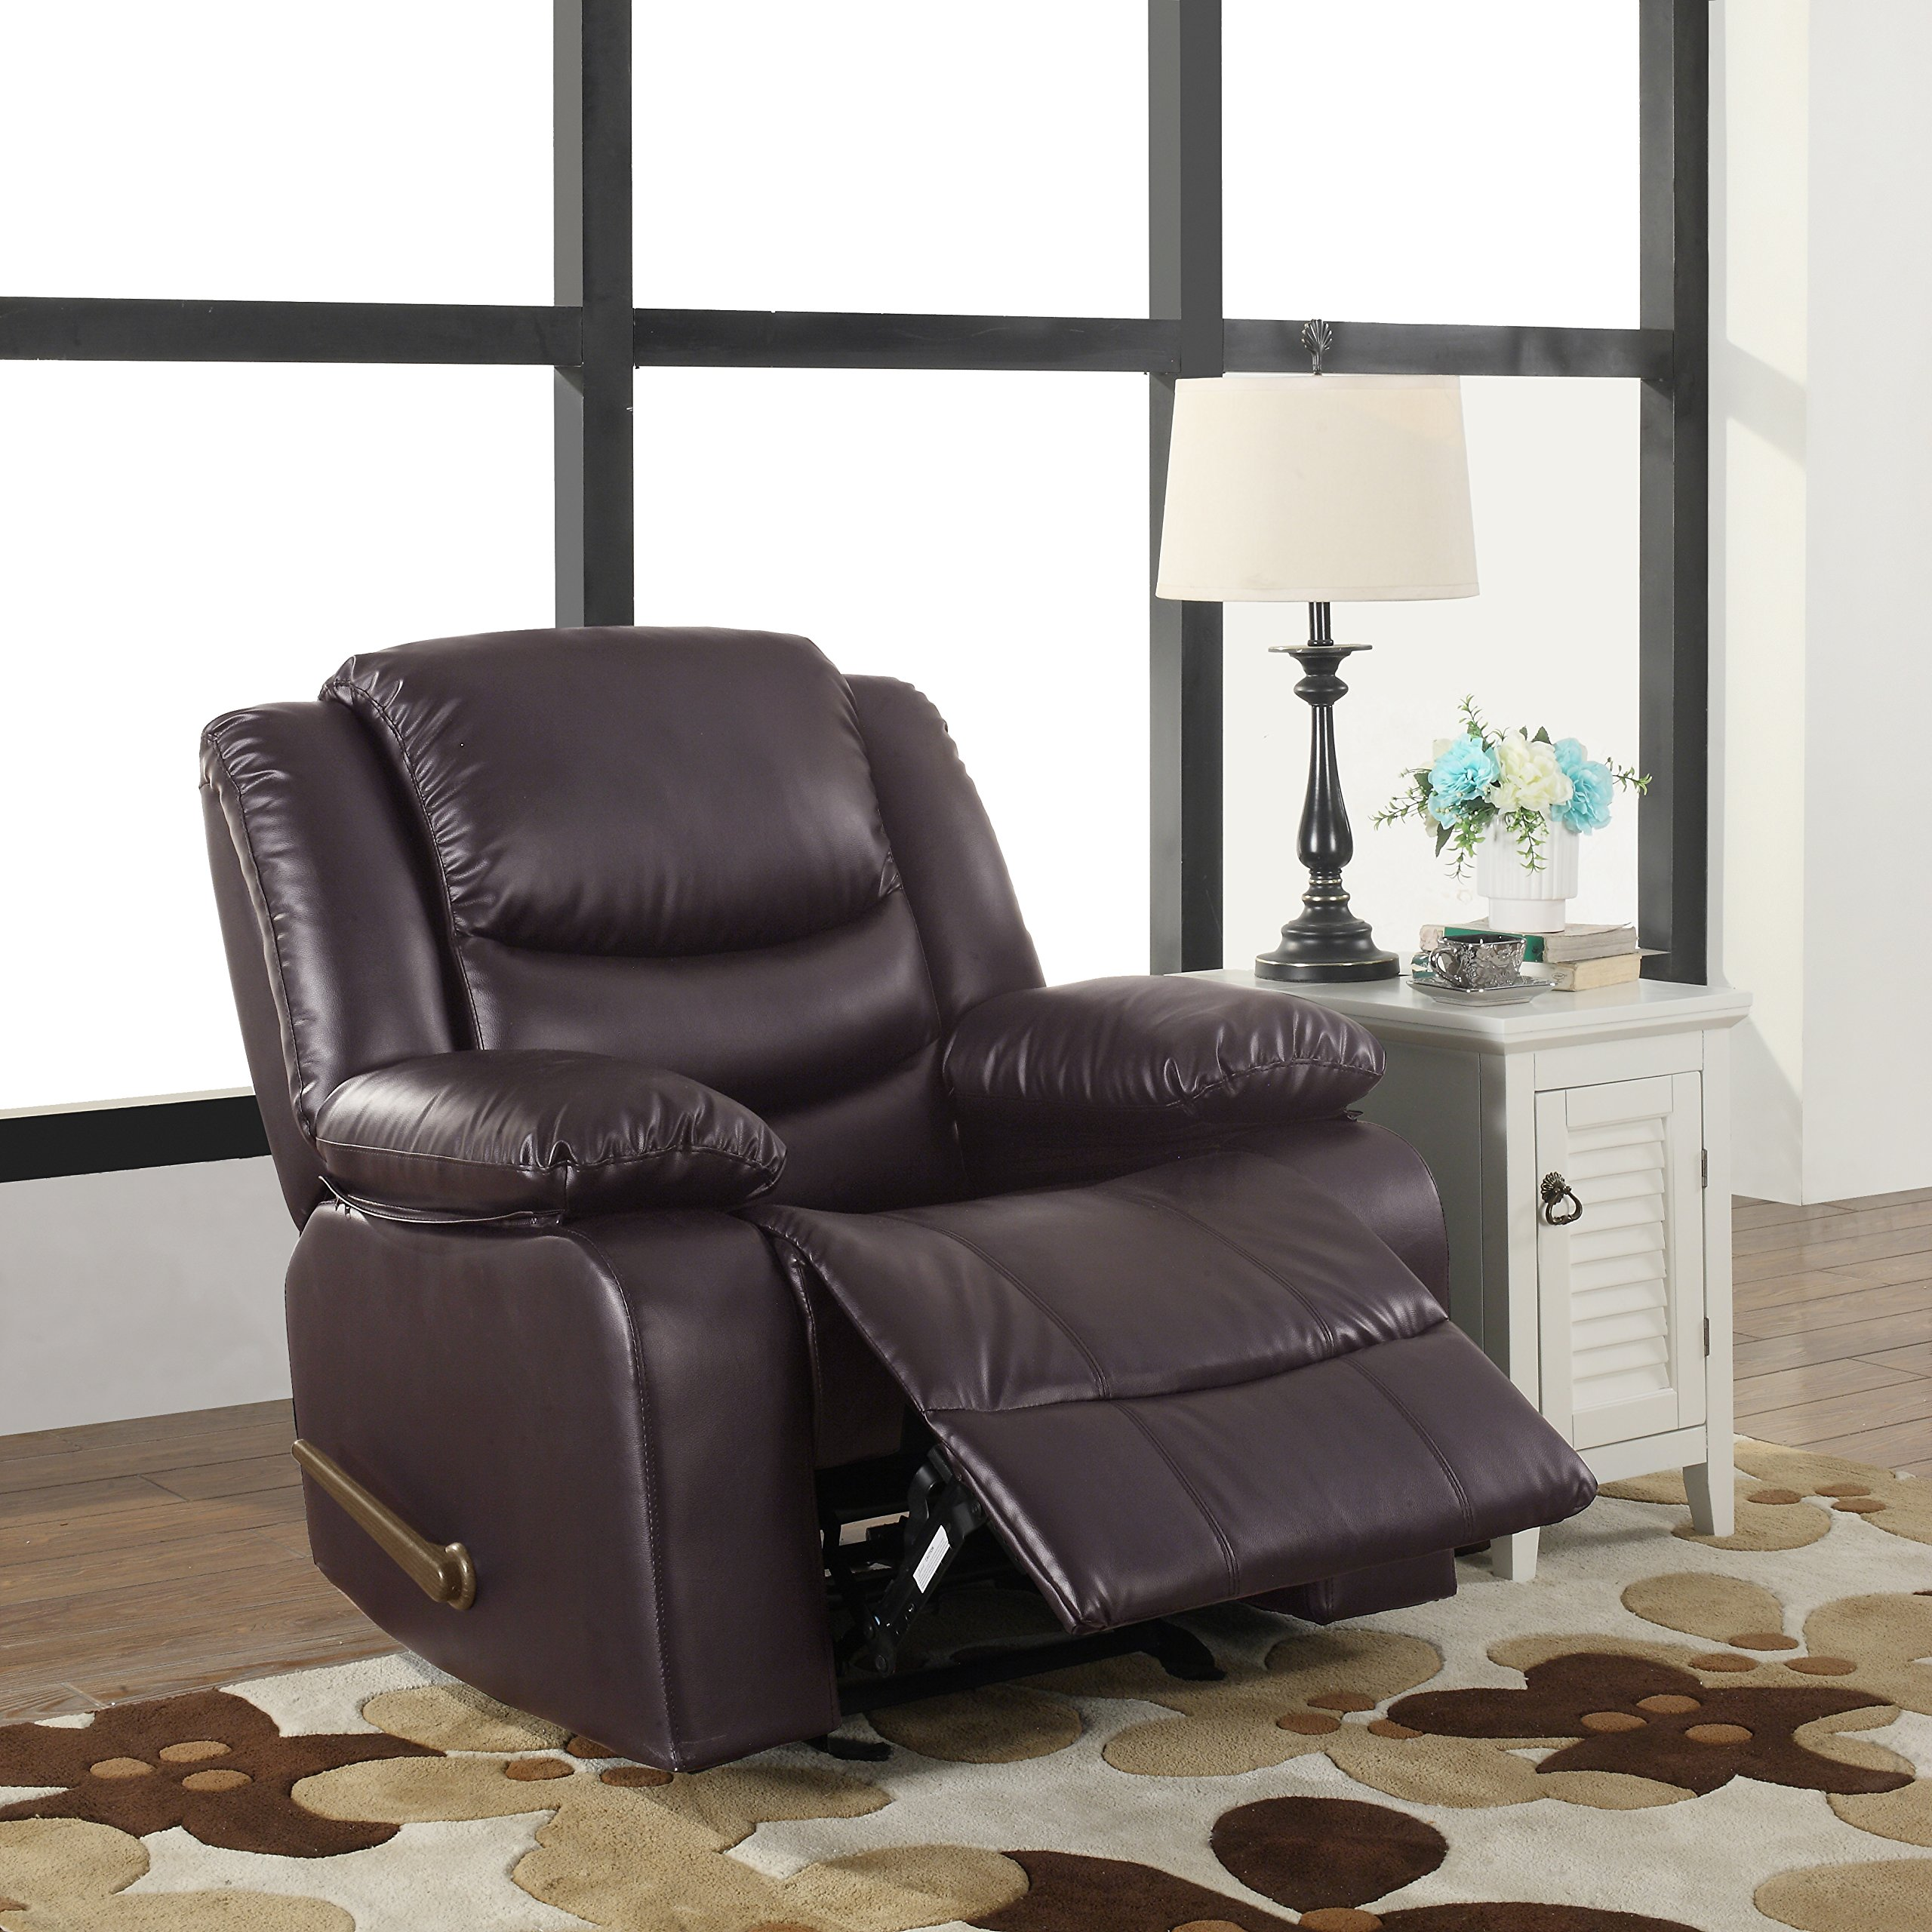 Bonded Leather Rocker Recliner Living Room Chair (Brown) by Divano Roma Furniture